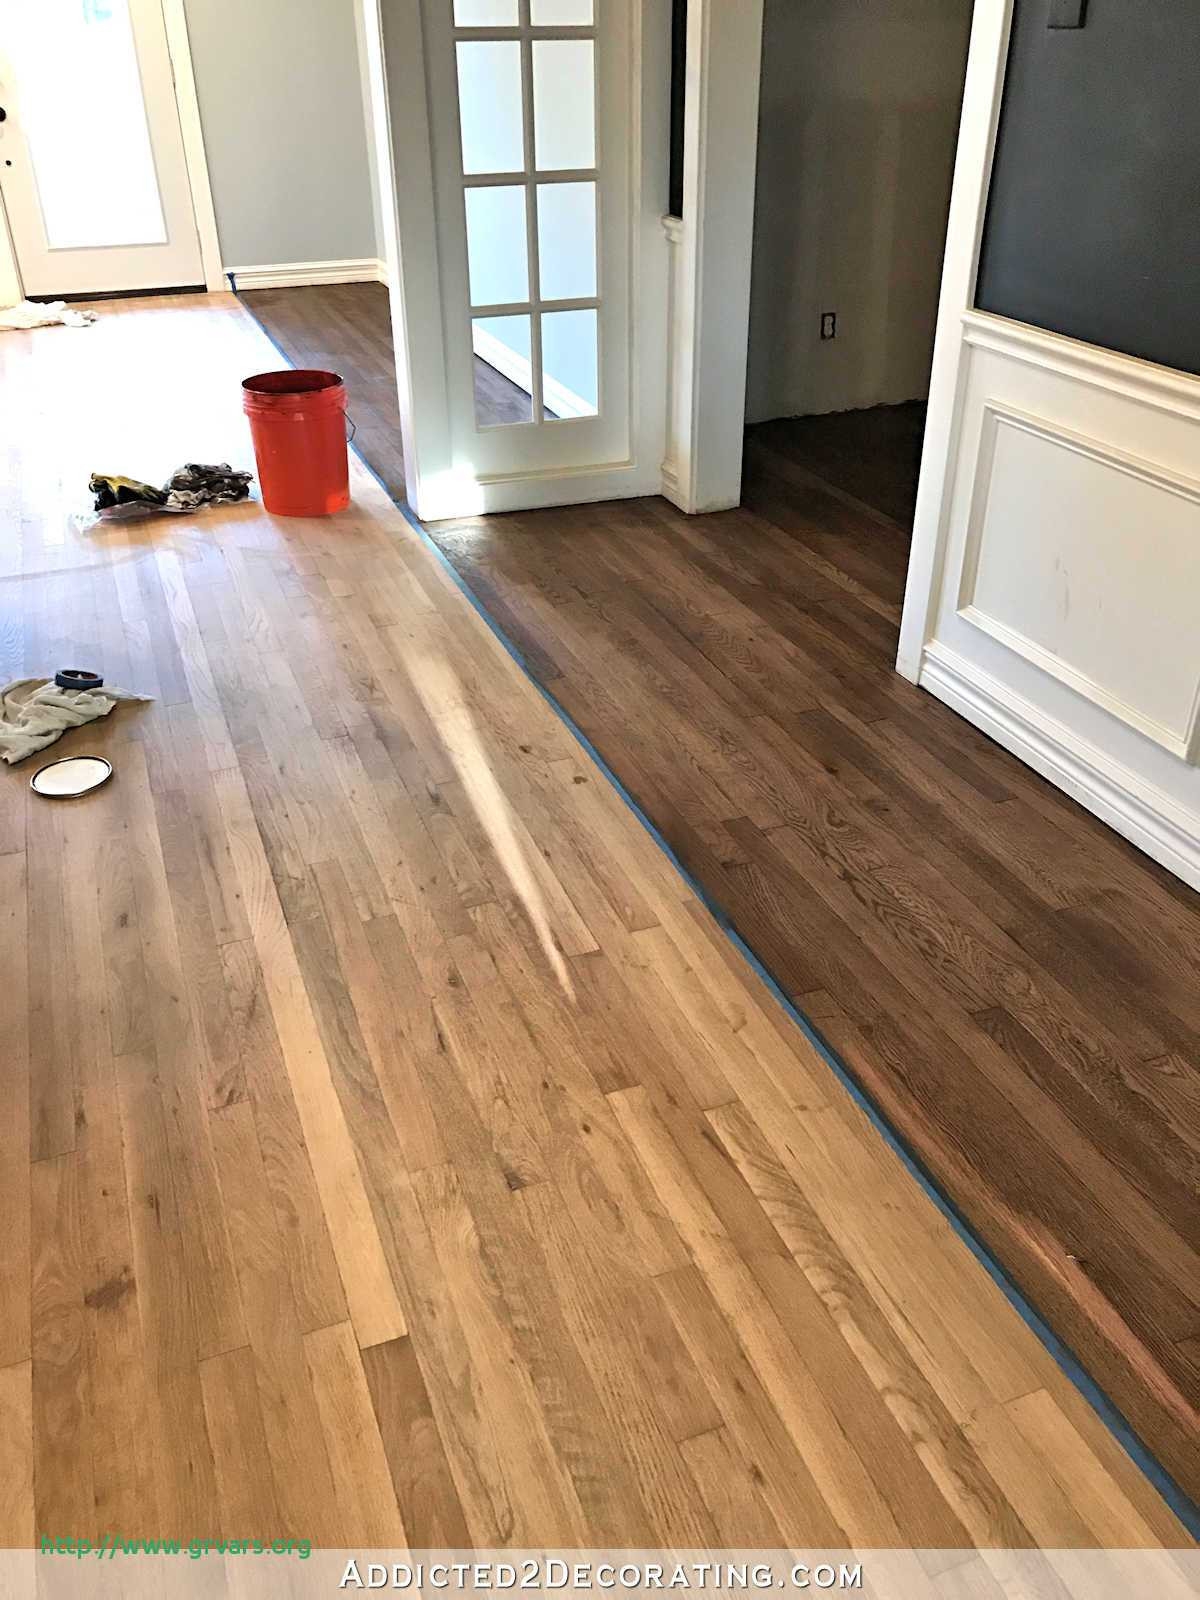 hardwood floor refinishing maryland of 15 charmant how to seal a hardwood floor ideas blog pertaining to staining red oak hardwood floors 6 stain on partial floor in entryway and music